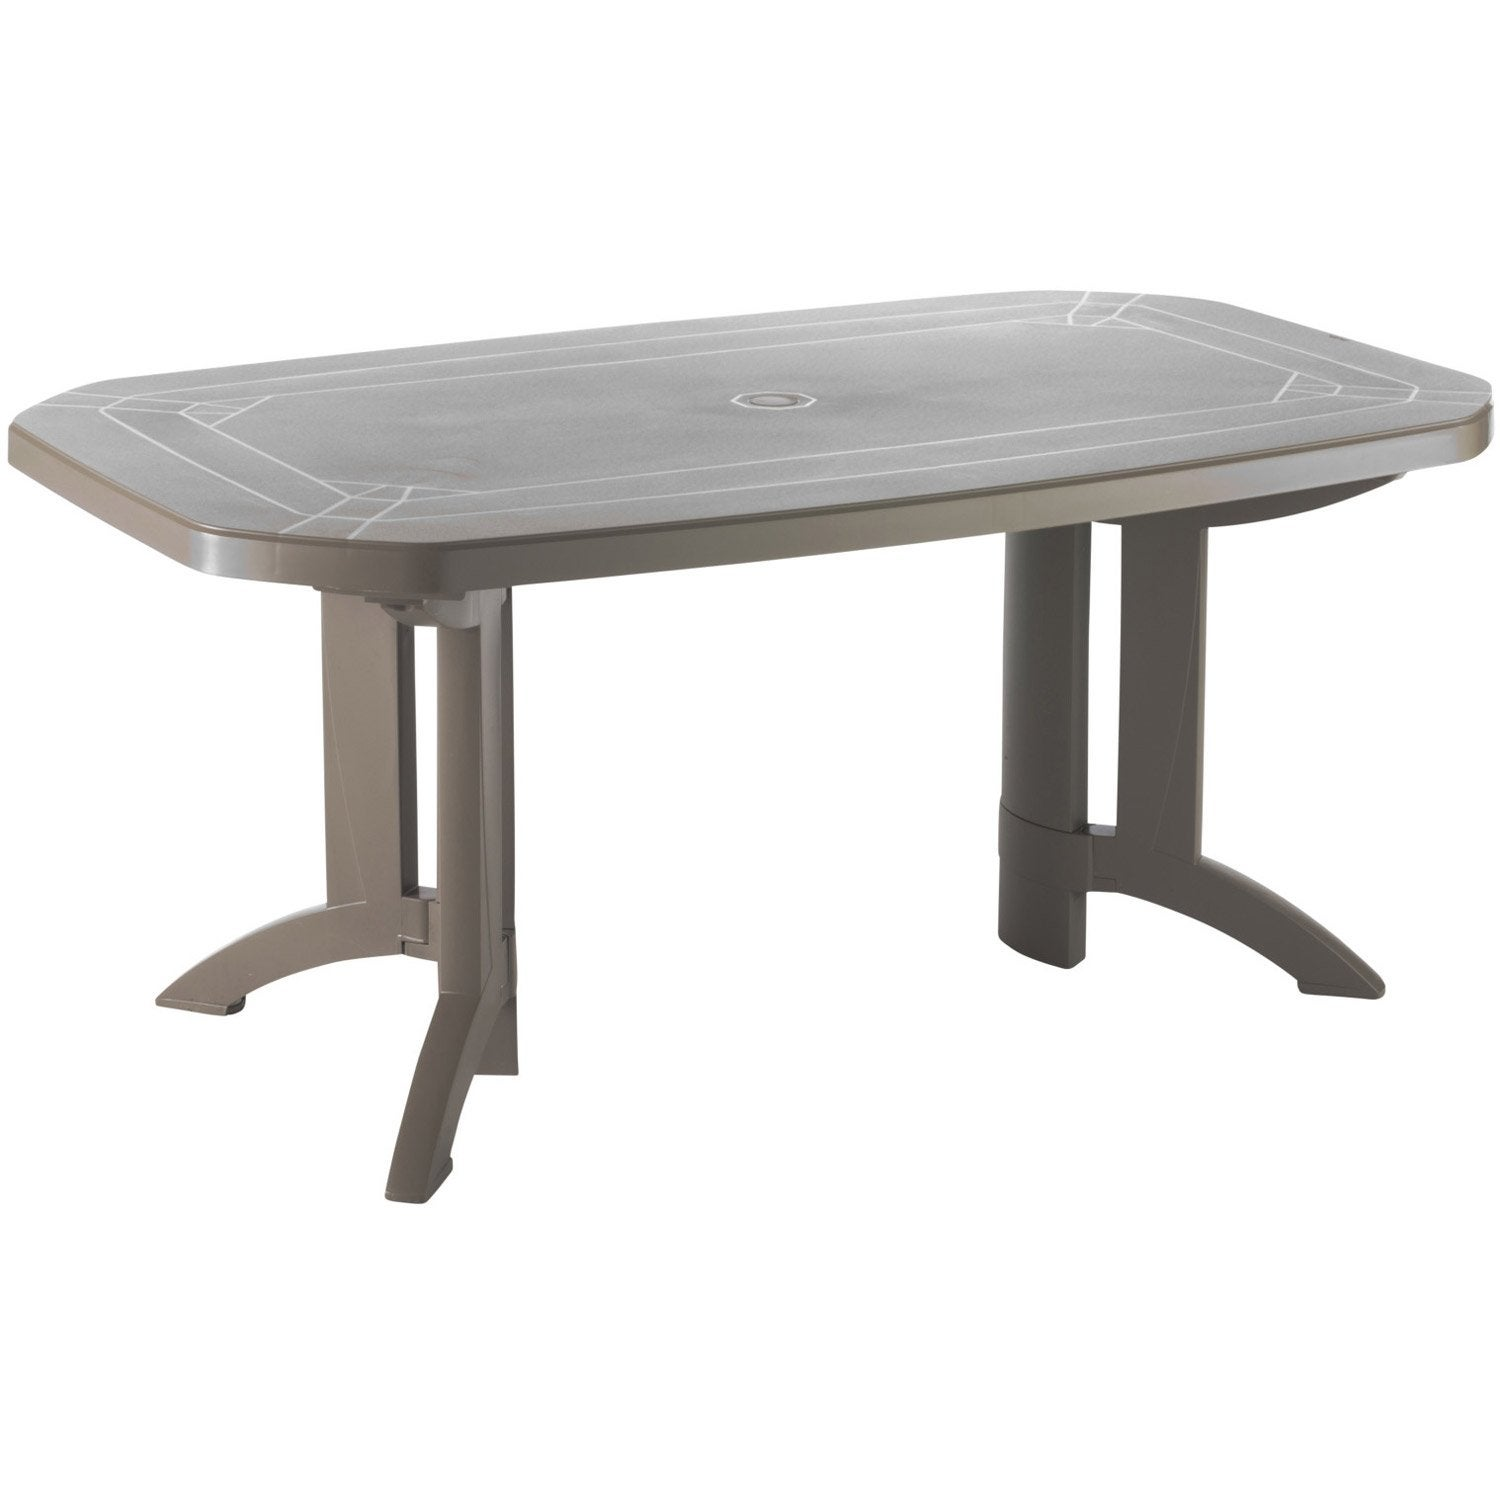 Table de jardin GROSFILLEX Véga rectangulaire taupe 6 personnes ...